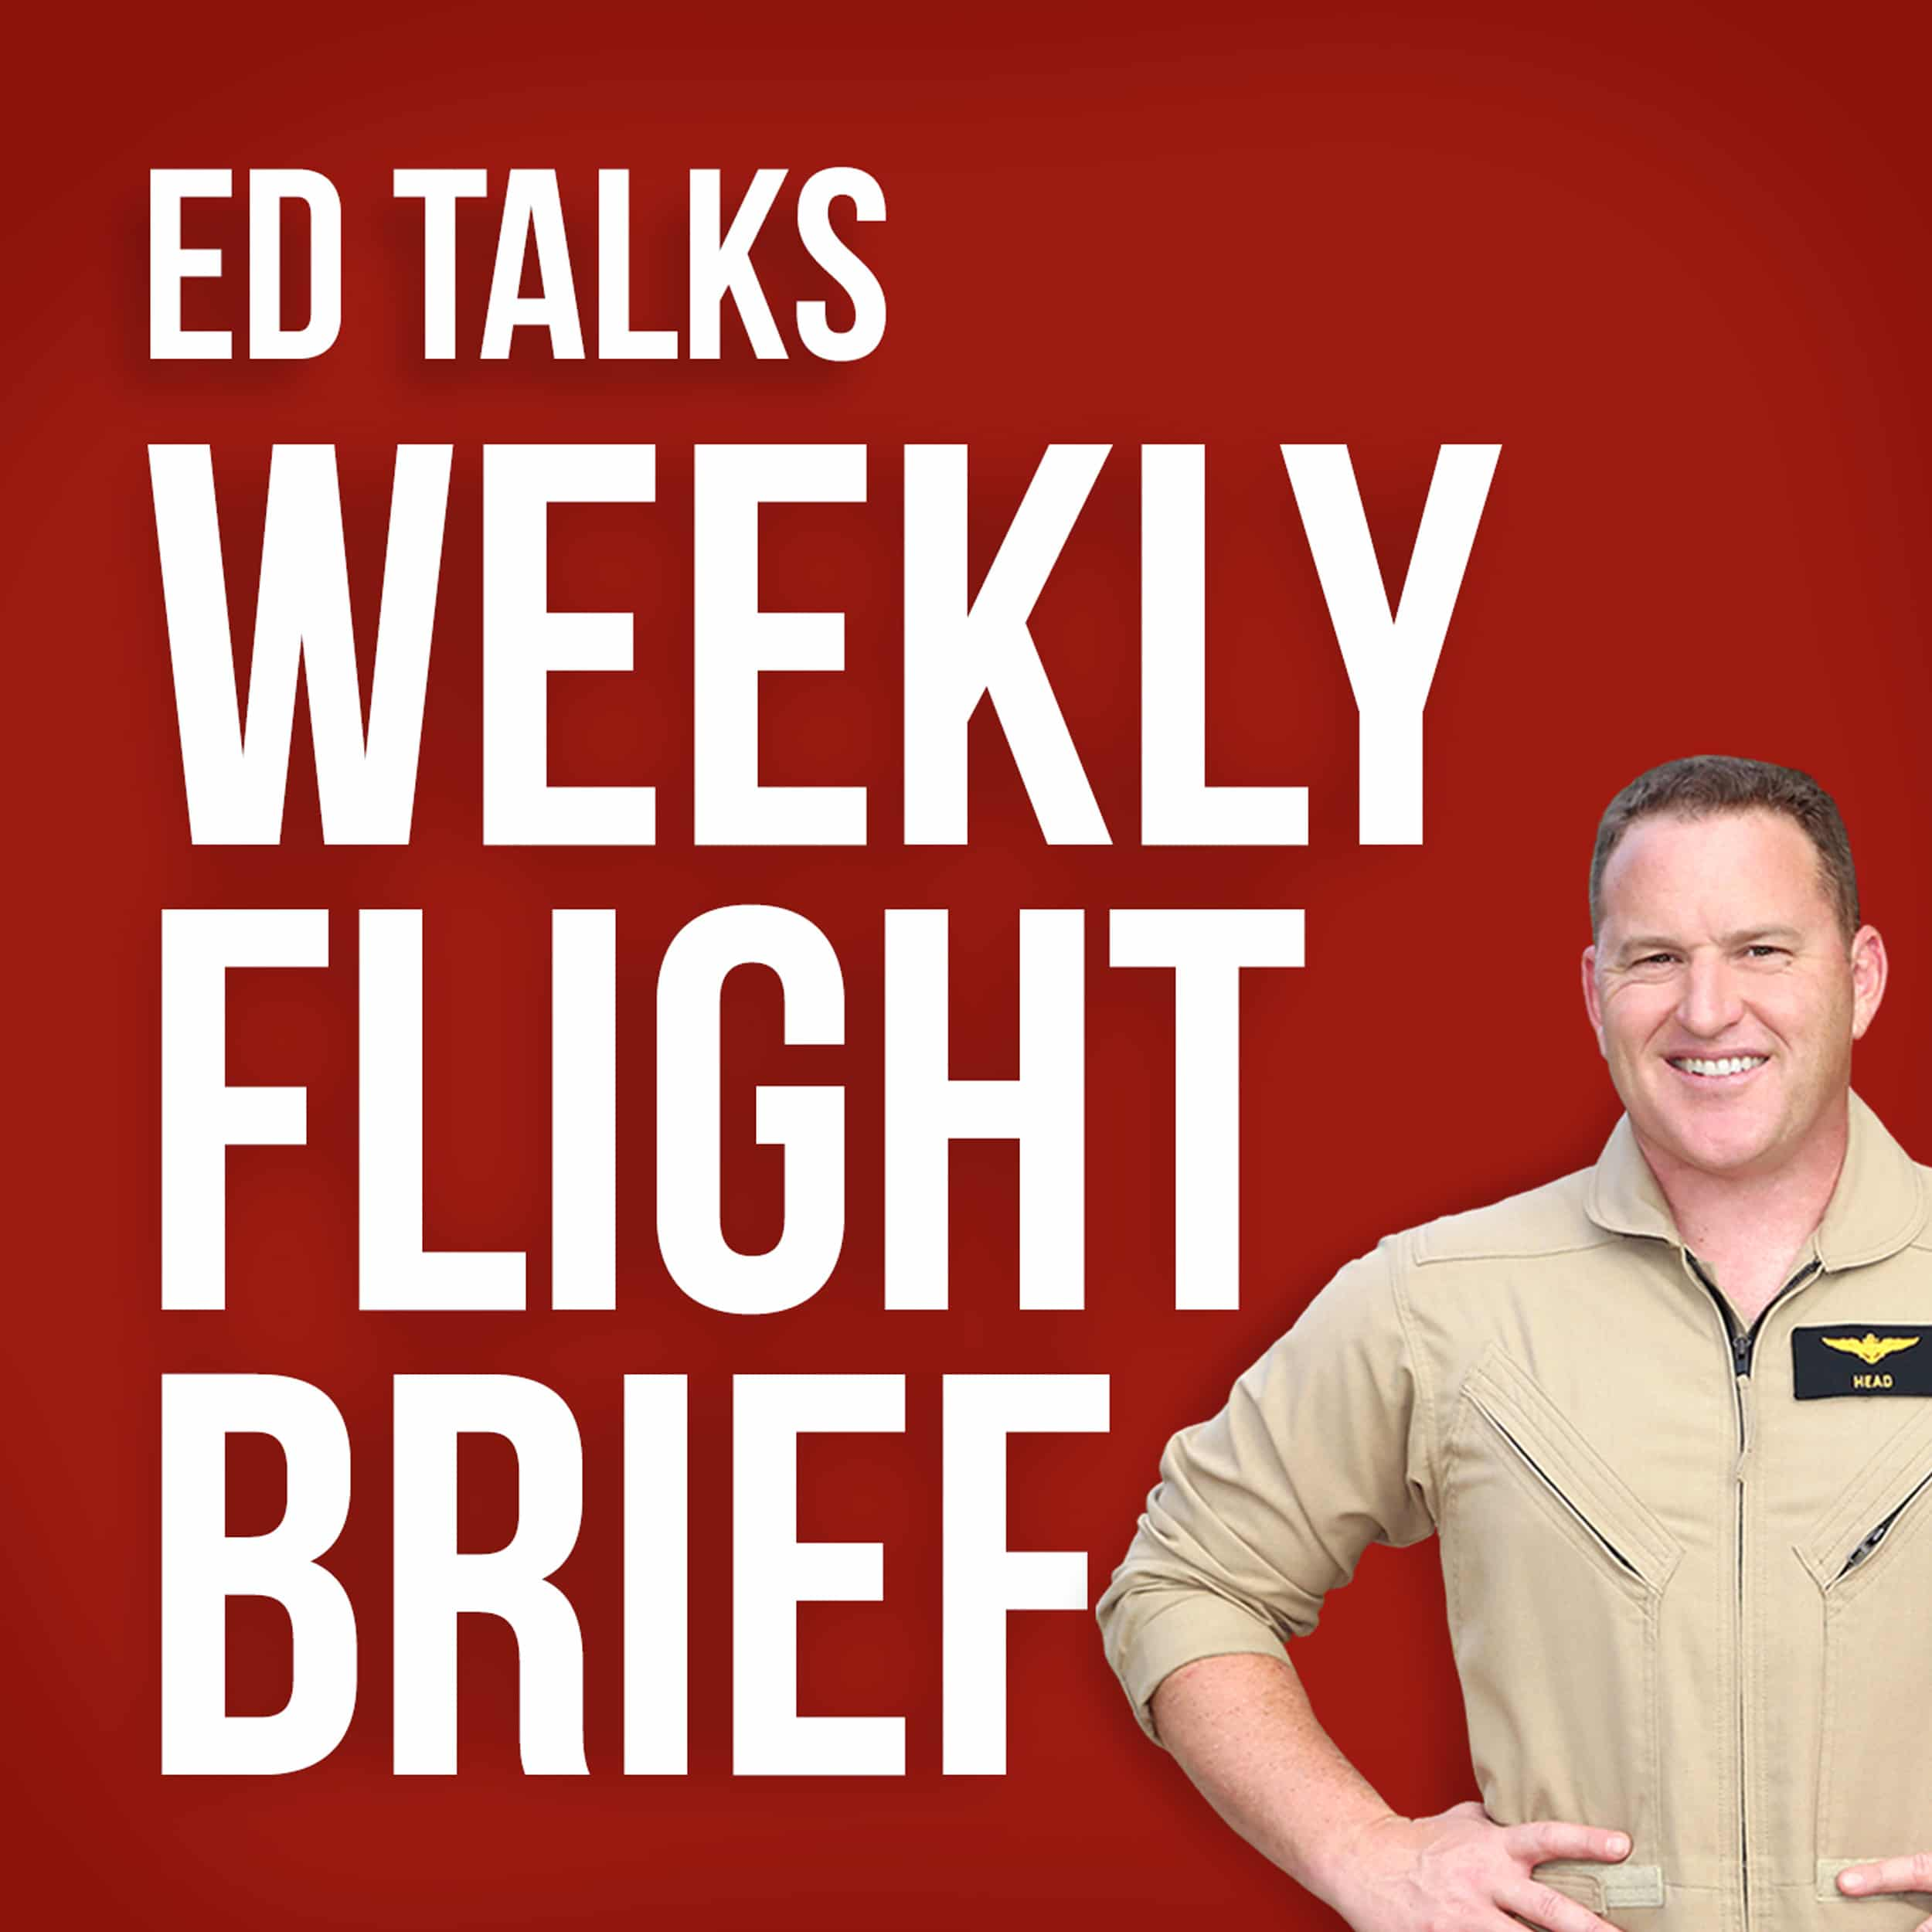 EDTalksWeeklyFlightBrief - Ed Rush | Business Growth Acceleration Mentor, Speaker, Author - 5x #1 Bestselling Author, Speaker, Mentor, Advisor